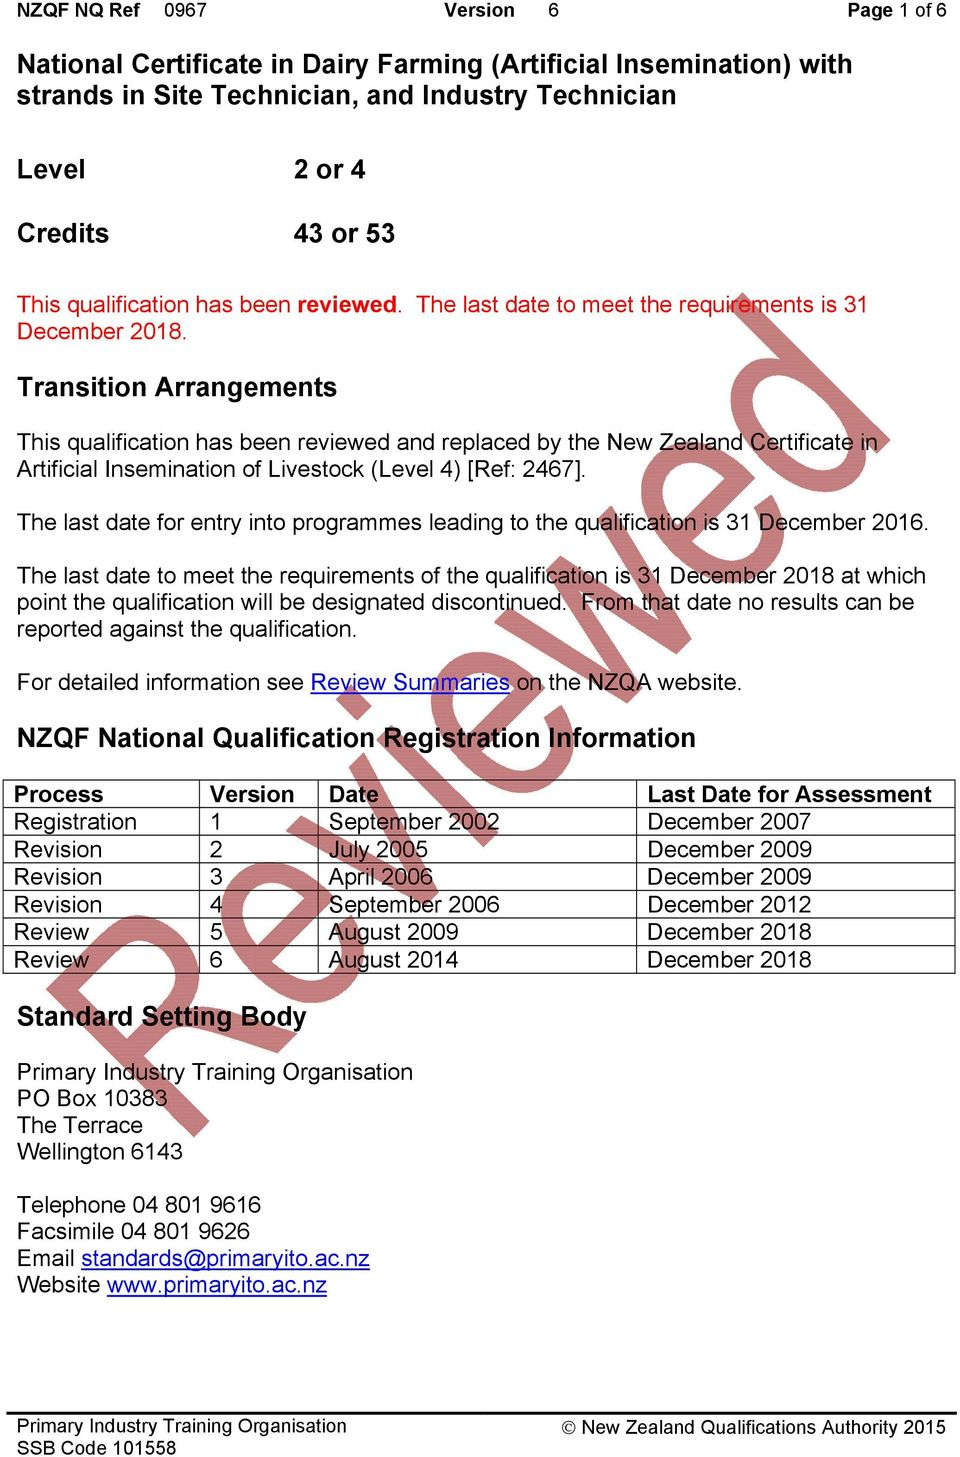 Transition Arrangements This qualification has been reviewed and replaced by the New Zealand Certificate in Artificial Insemination of Livestock (Level 4) [Ref: 2467].